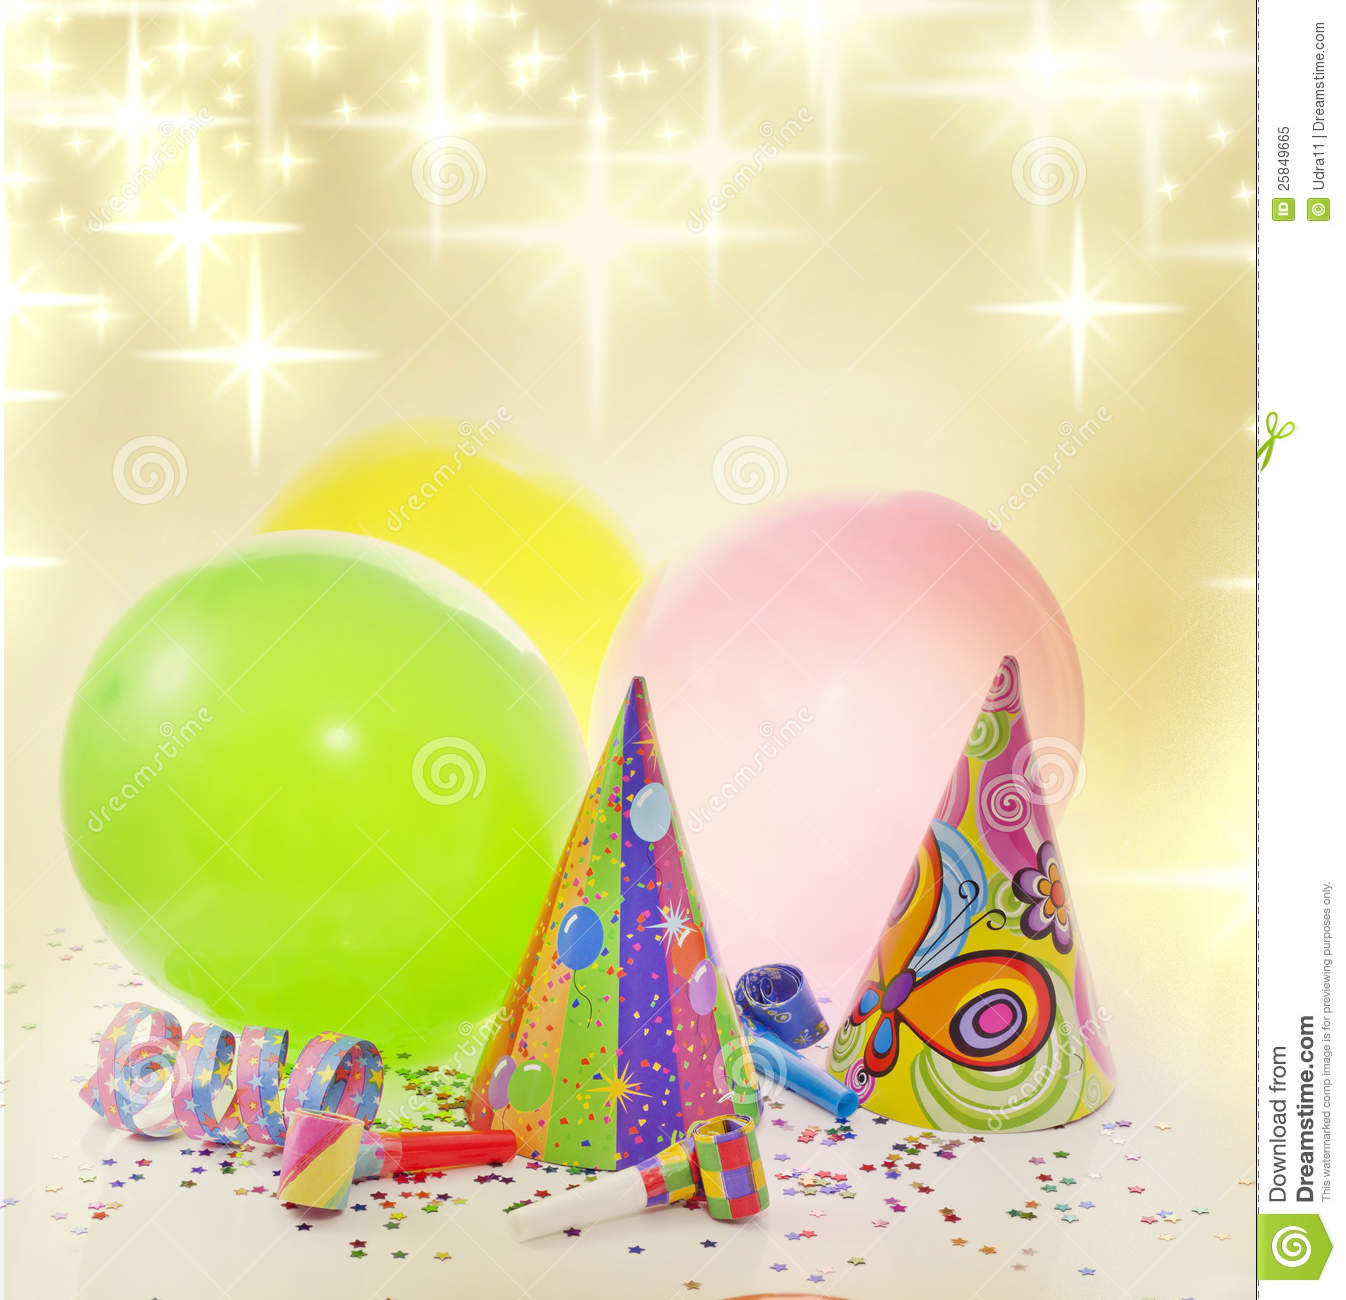 party birthday new year background